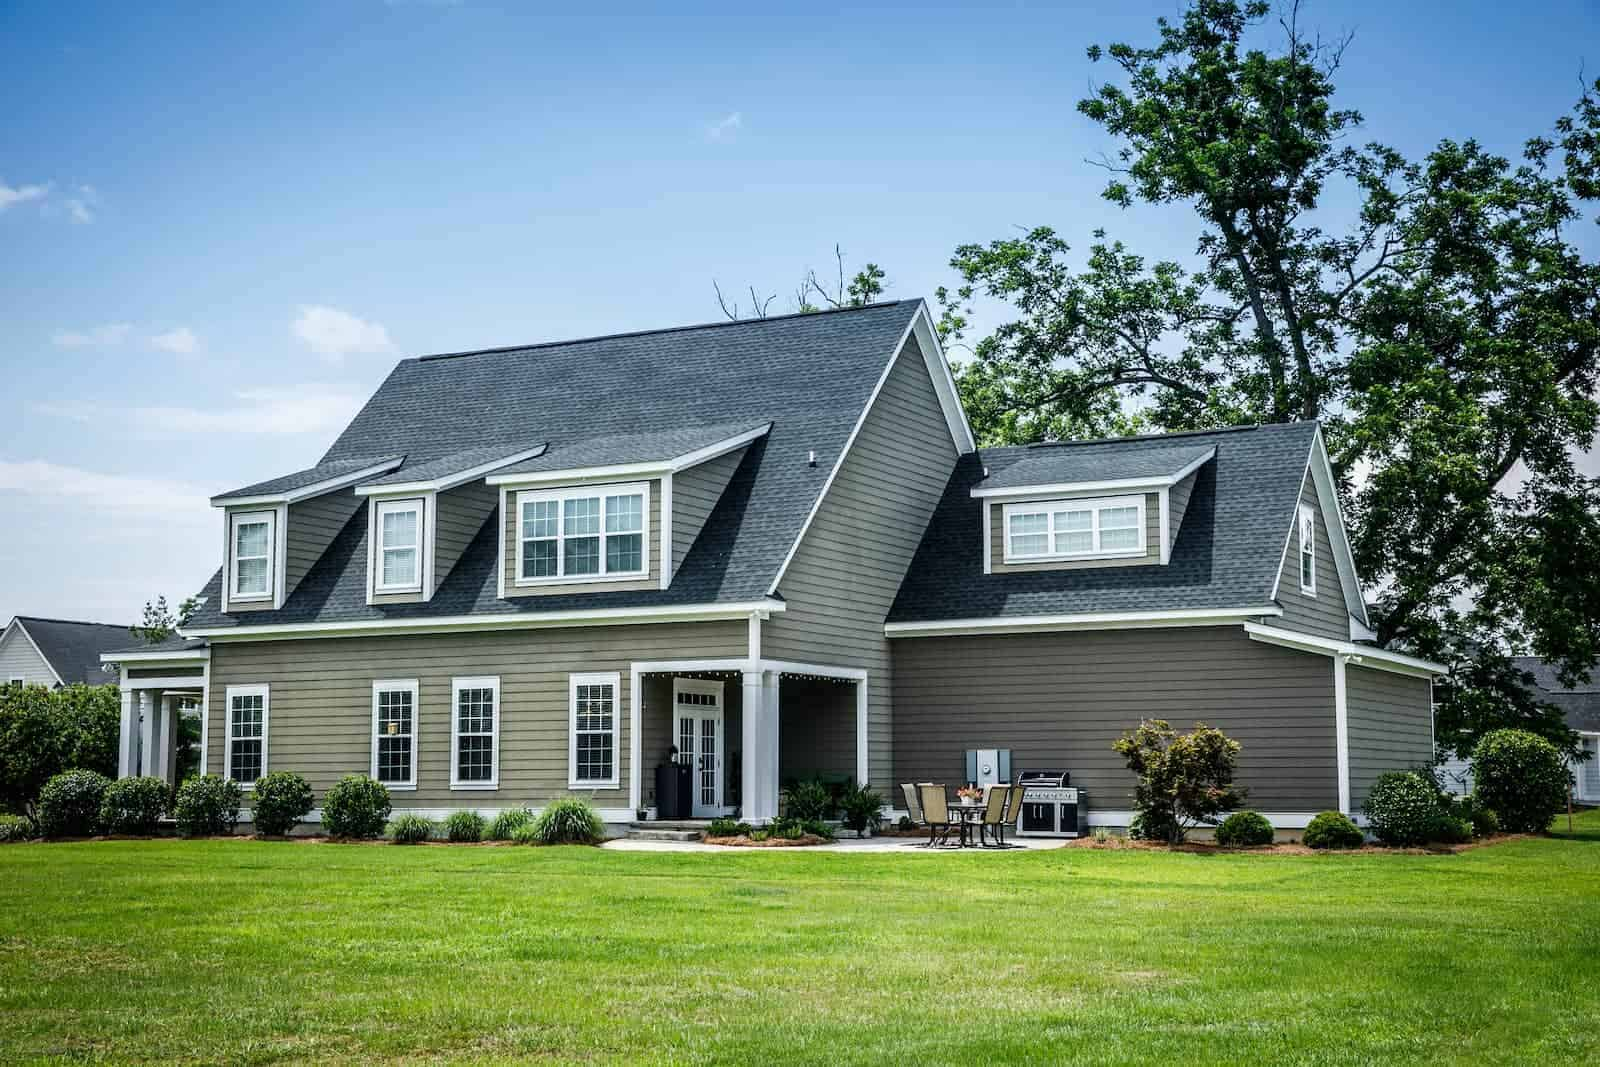 Full Shingle Roof Replacement by RoofClaim.com